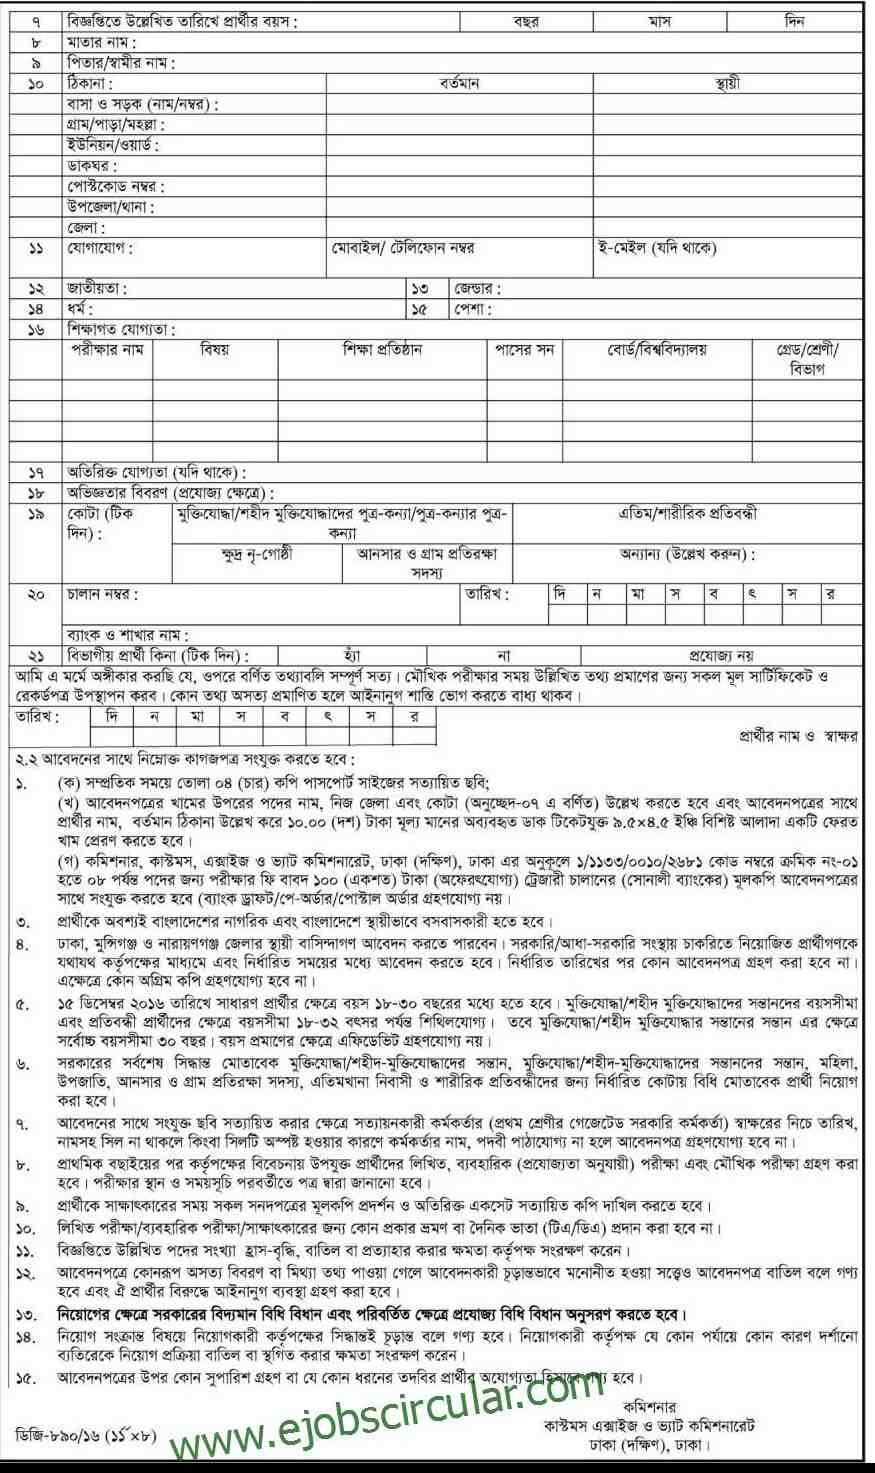 Customs Excise And VAT Commissionerate